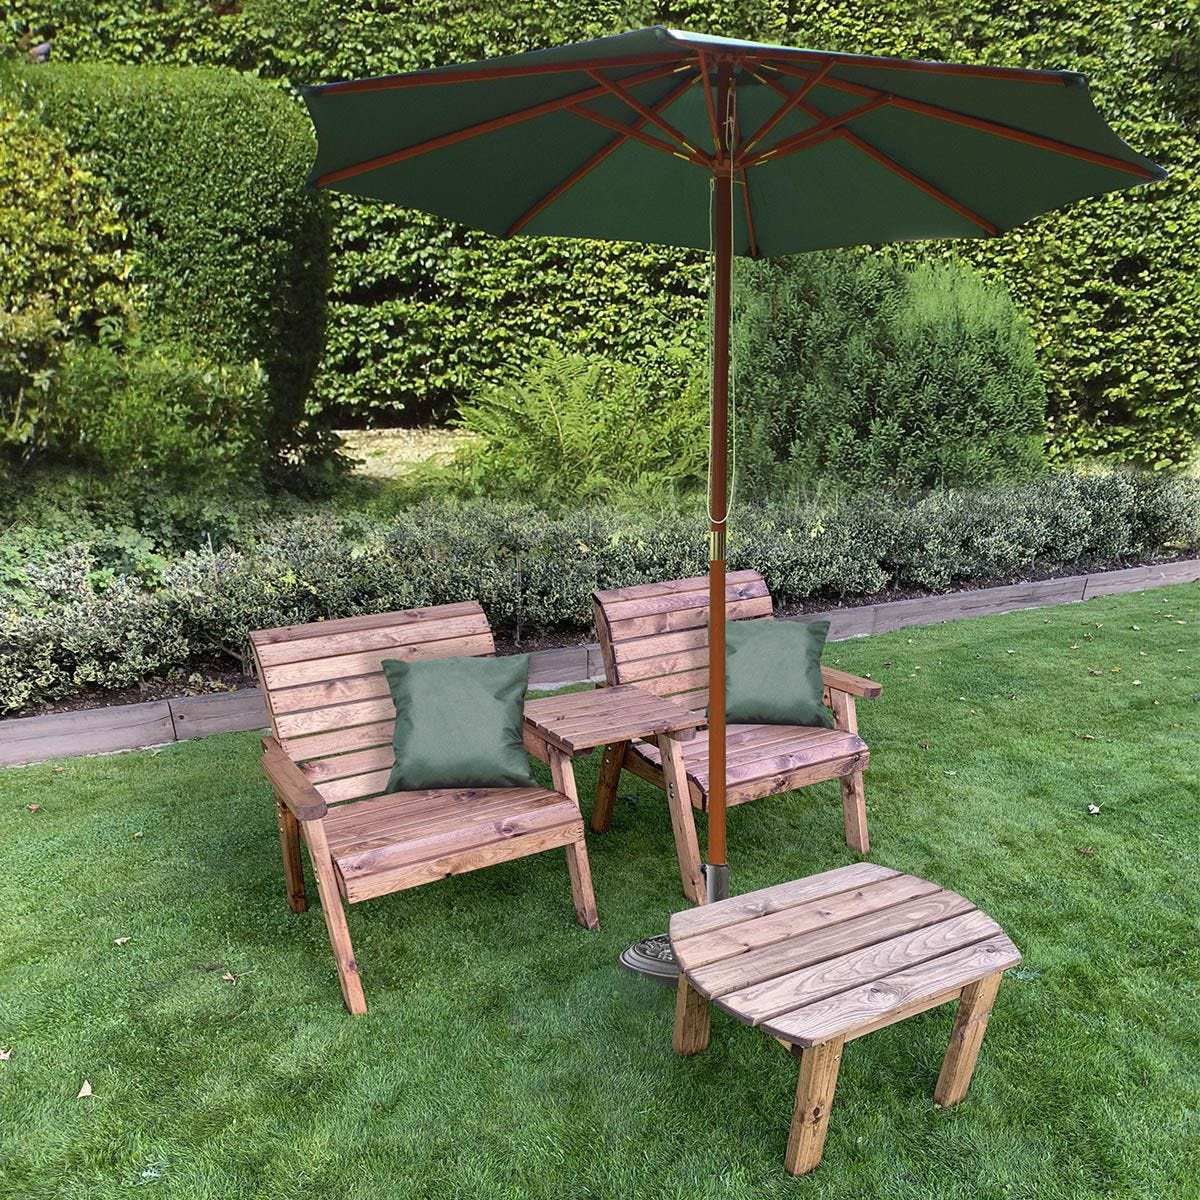 Charles Taylor Grand Twin Straight with Coffee Table and Green Parasol and Cushions